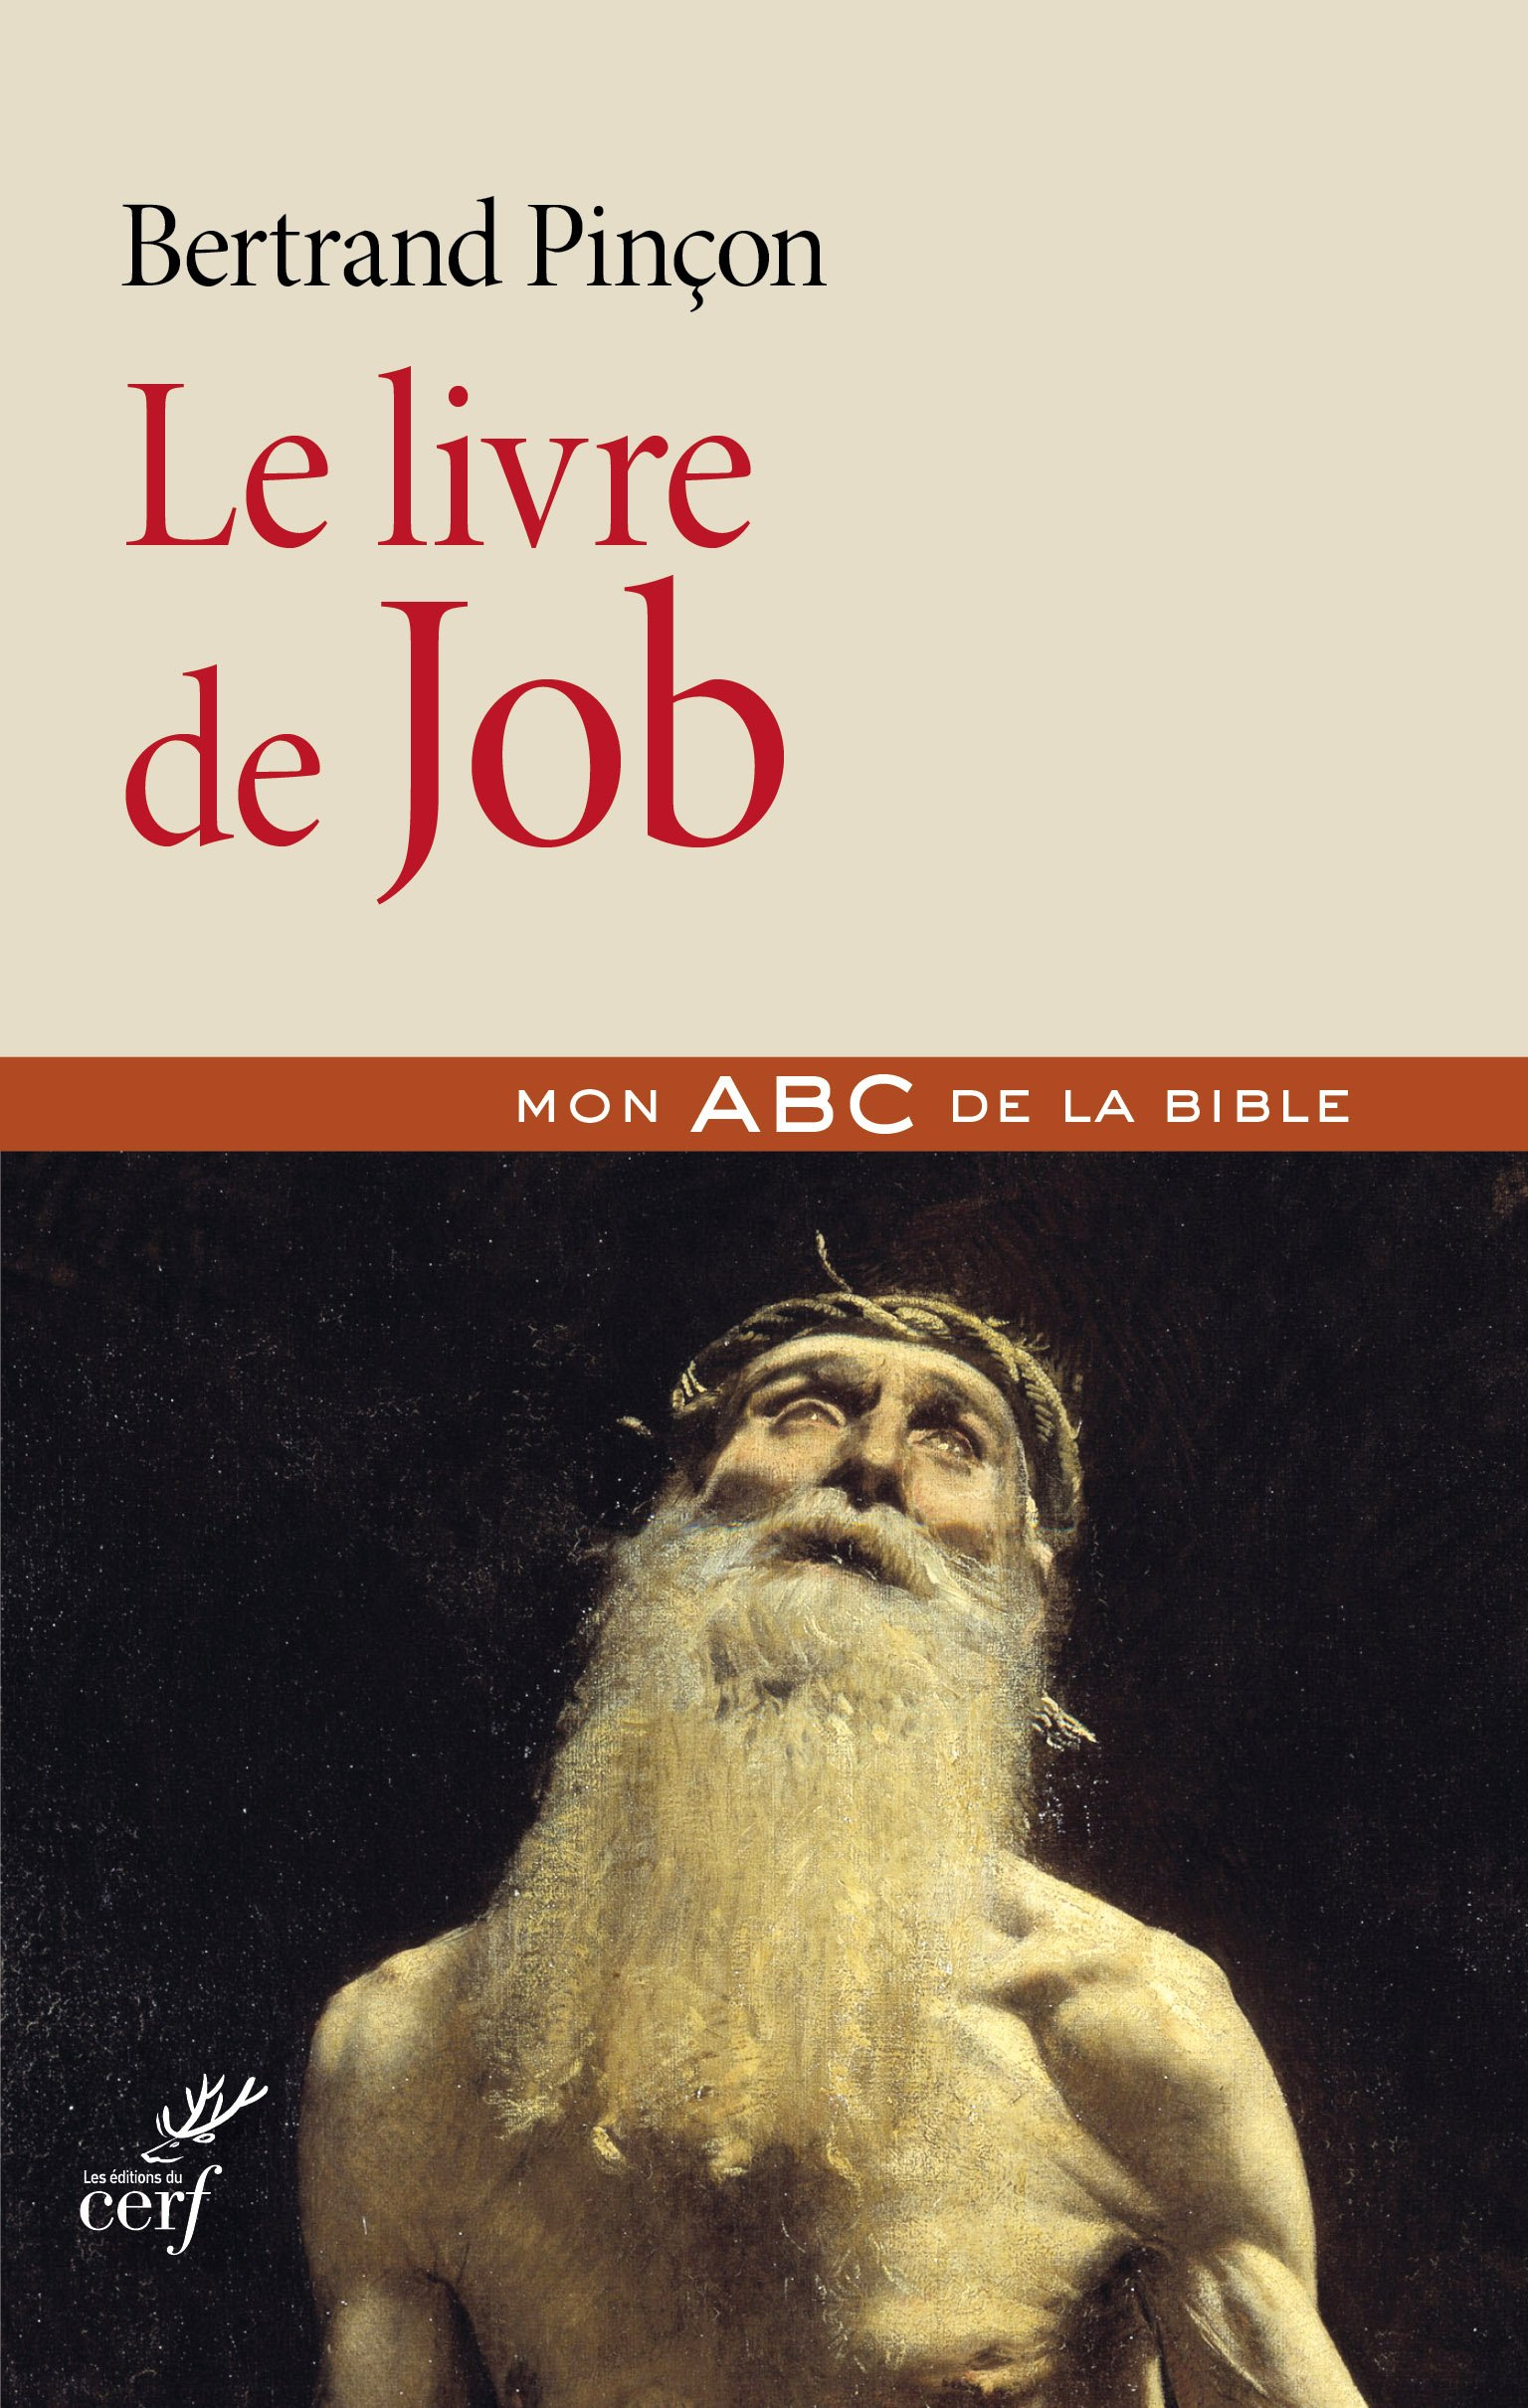 Relié : 143 pages Editeur : Cerf (8 avril 2016) Collection : Mon ABC de la Bible Langue : Français ISBN-10 : 2204106194 ISBN-13 : 978-2204106191 Dimensions : 19,5 x 1 x 12,5 cm